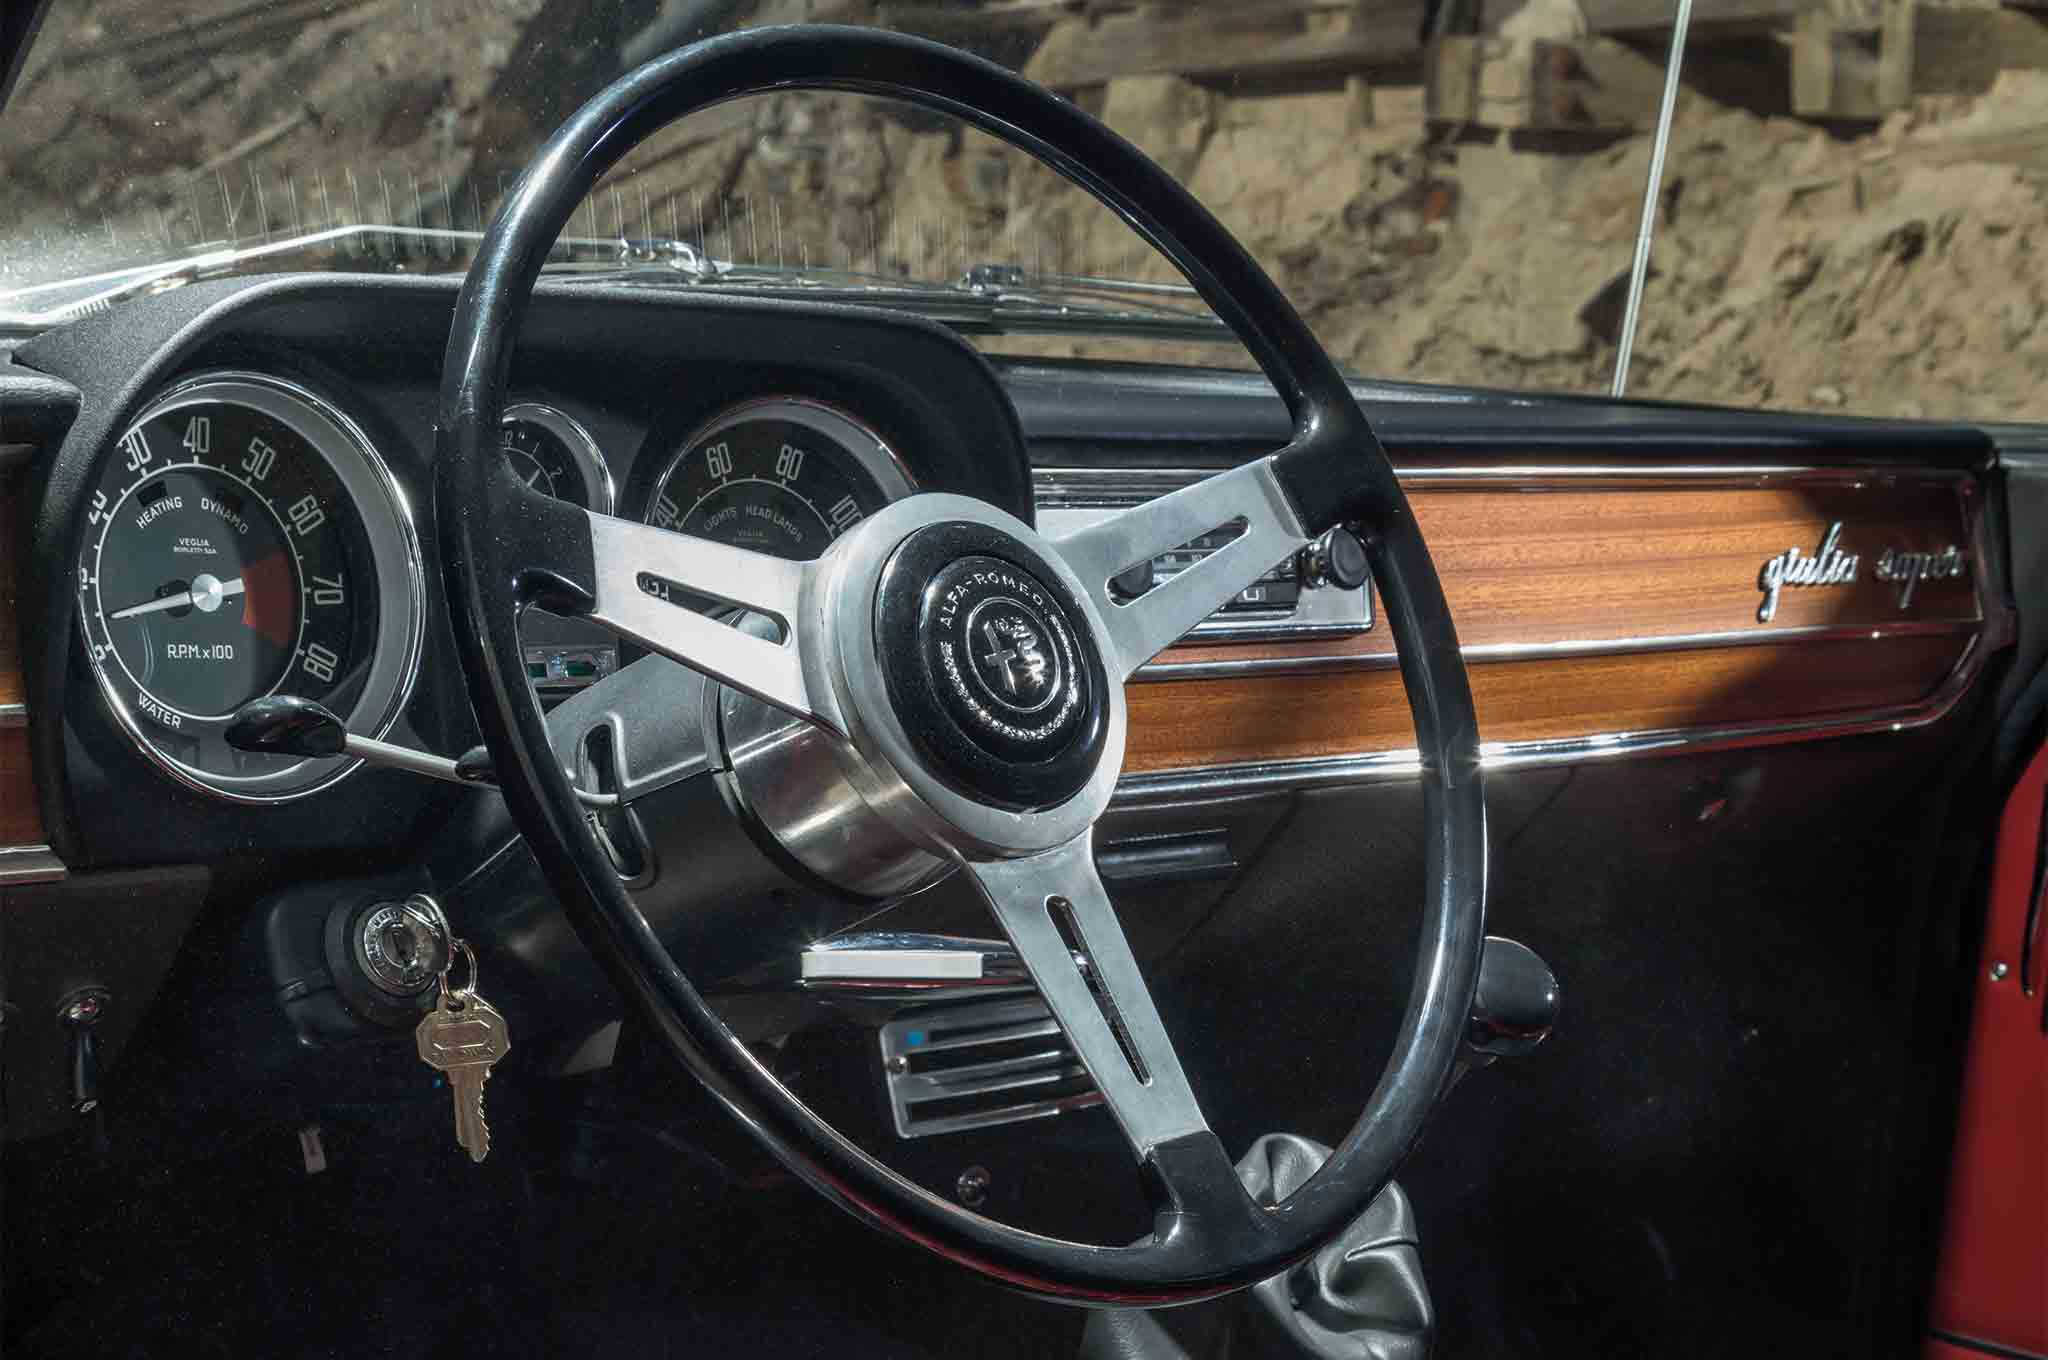 The 2017 Alfa Romeo Giulia Meets Its Predecessors In Wild West Steering Wheel 4 18